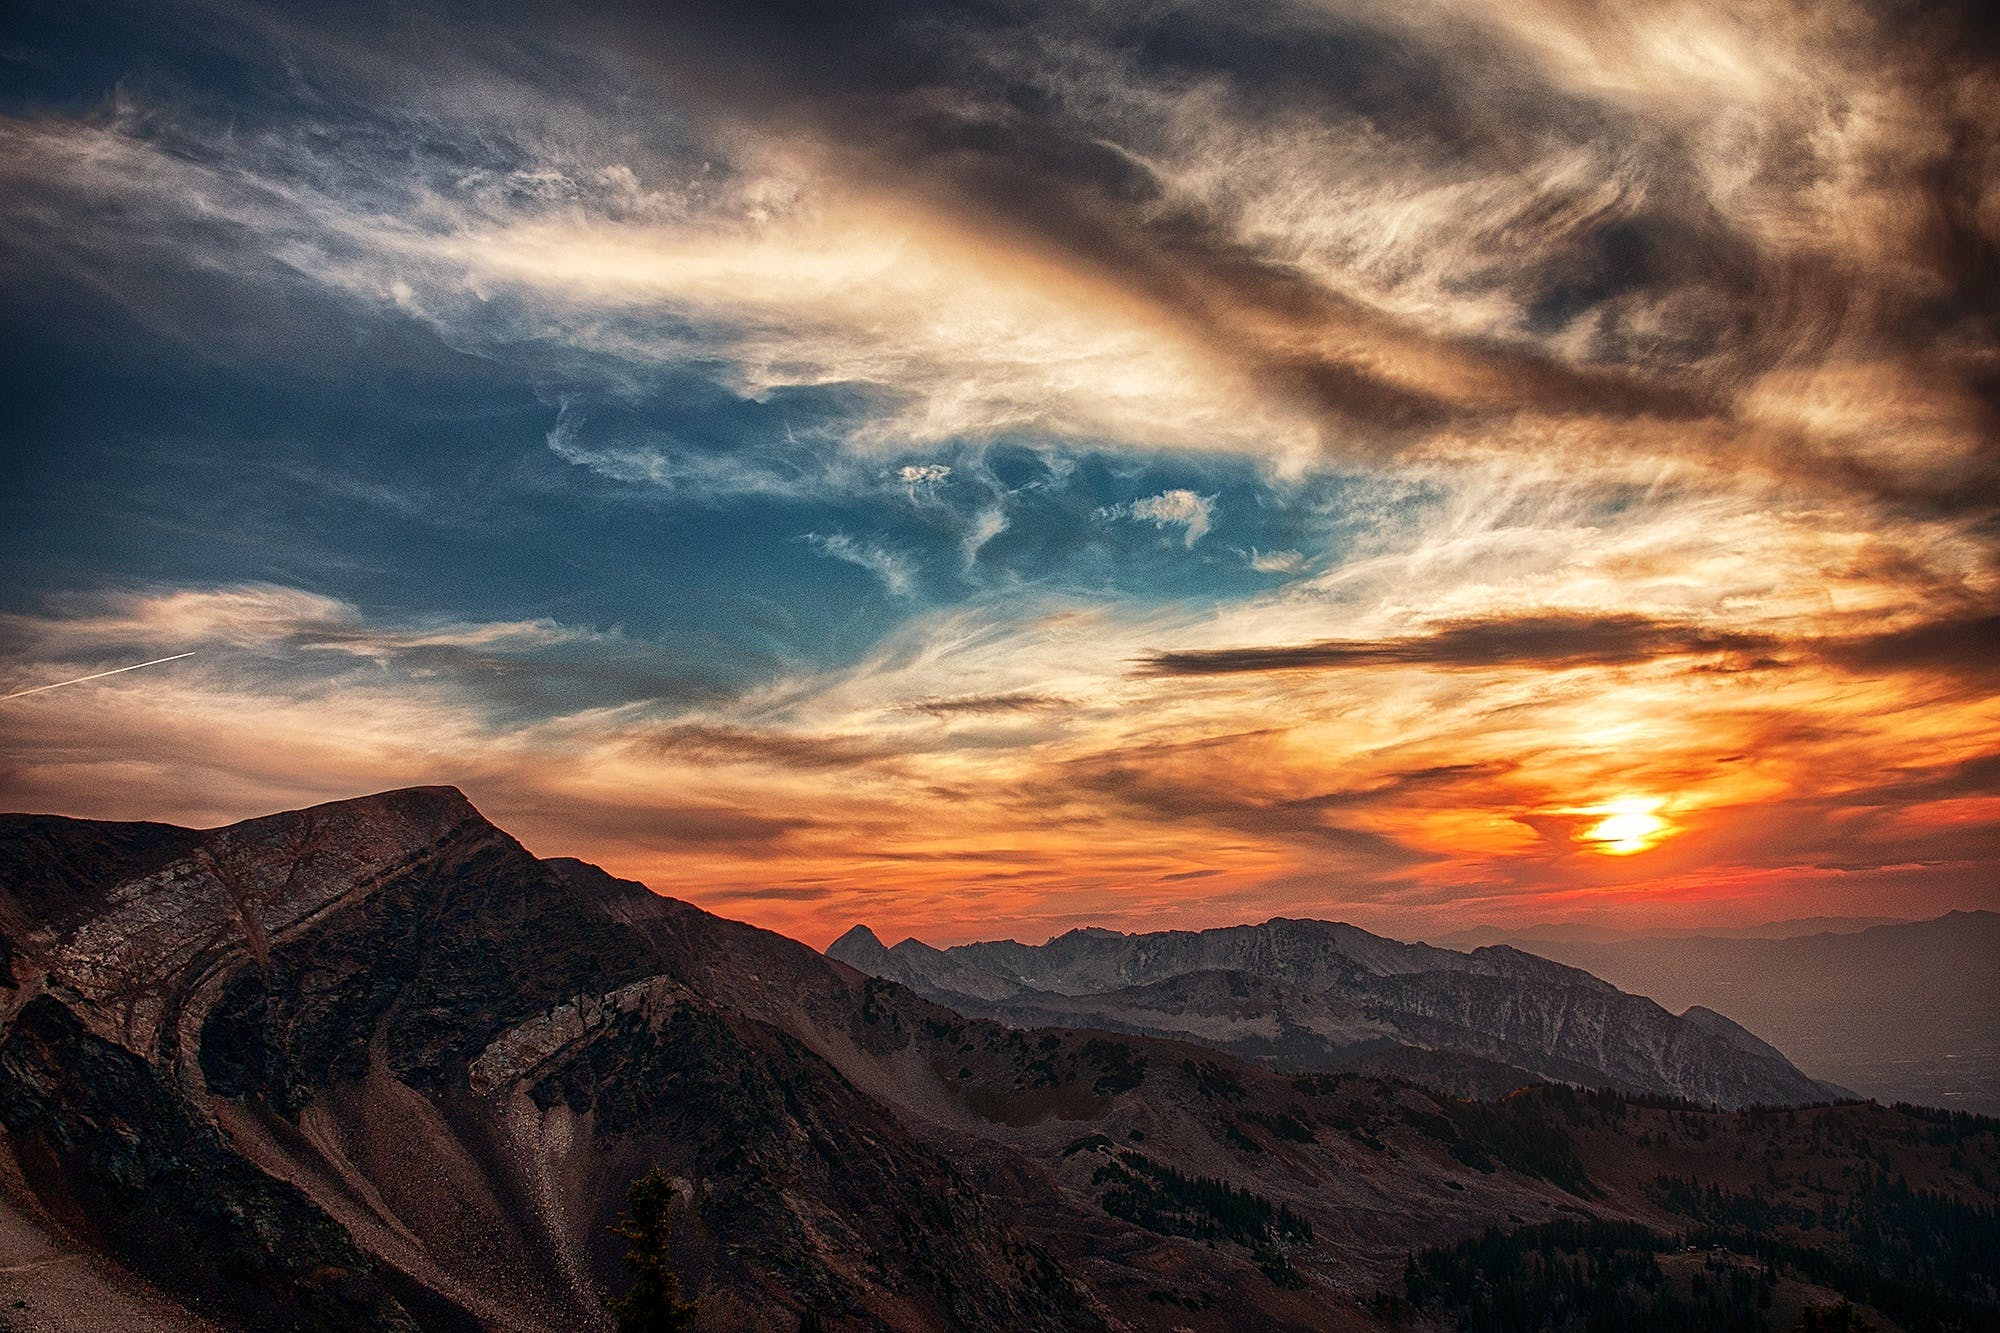 Aerial Photography of Mountains Under Orange and White Sky